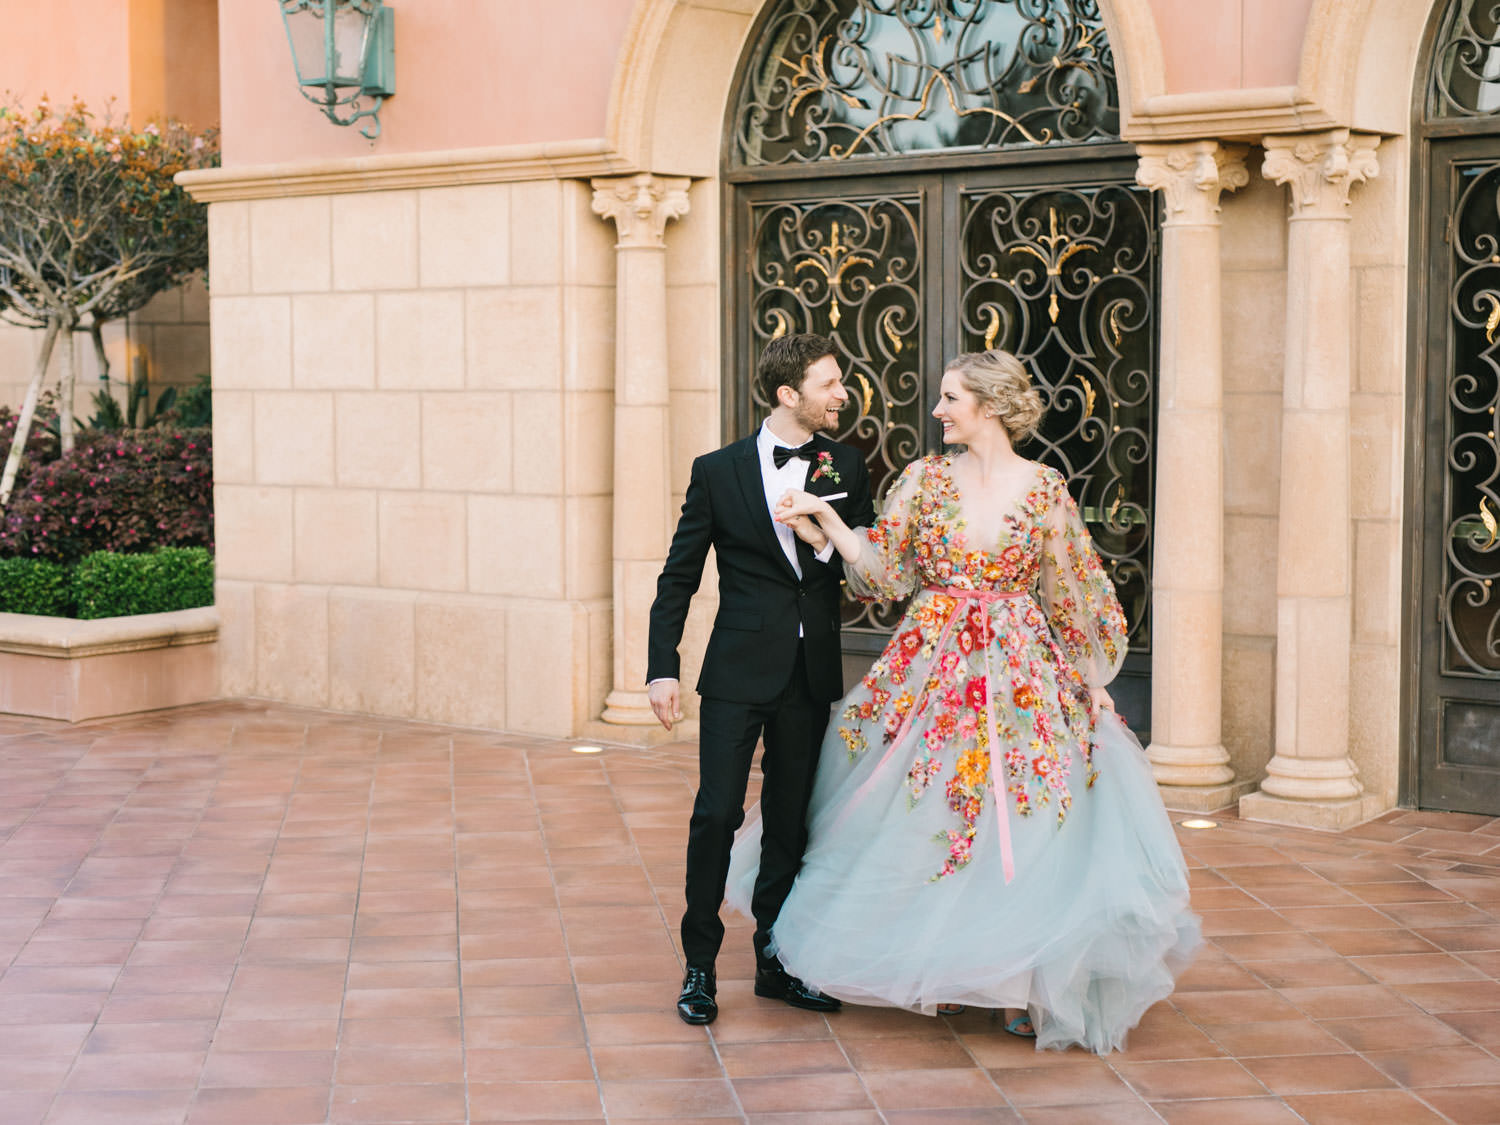 Bride wearing colorful Marchesa wedding gown with blue, pink, yellow, green, and orange floral appliques. Groom walking with bride.